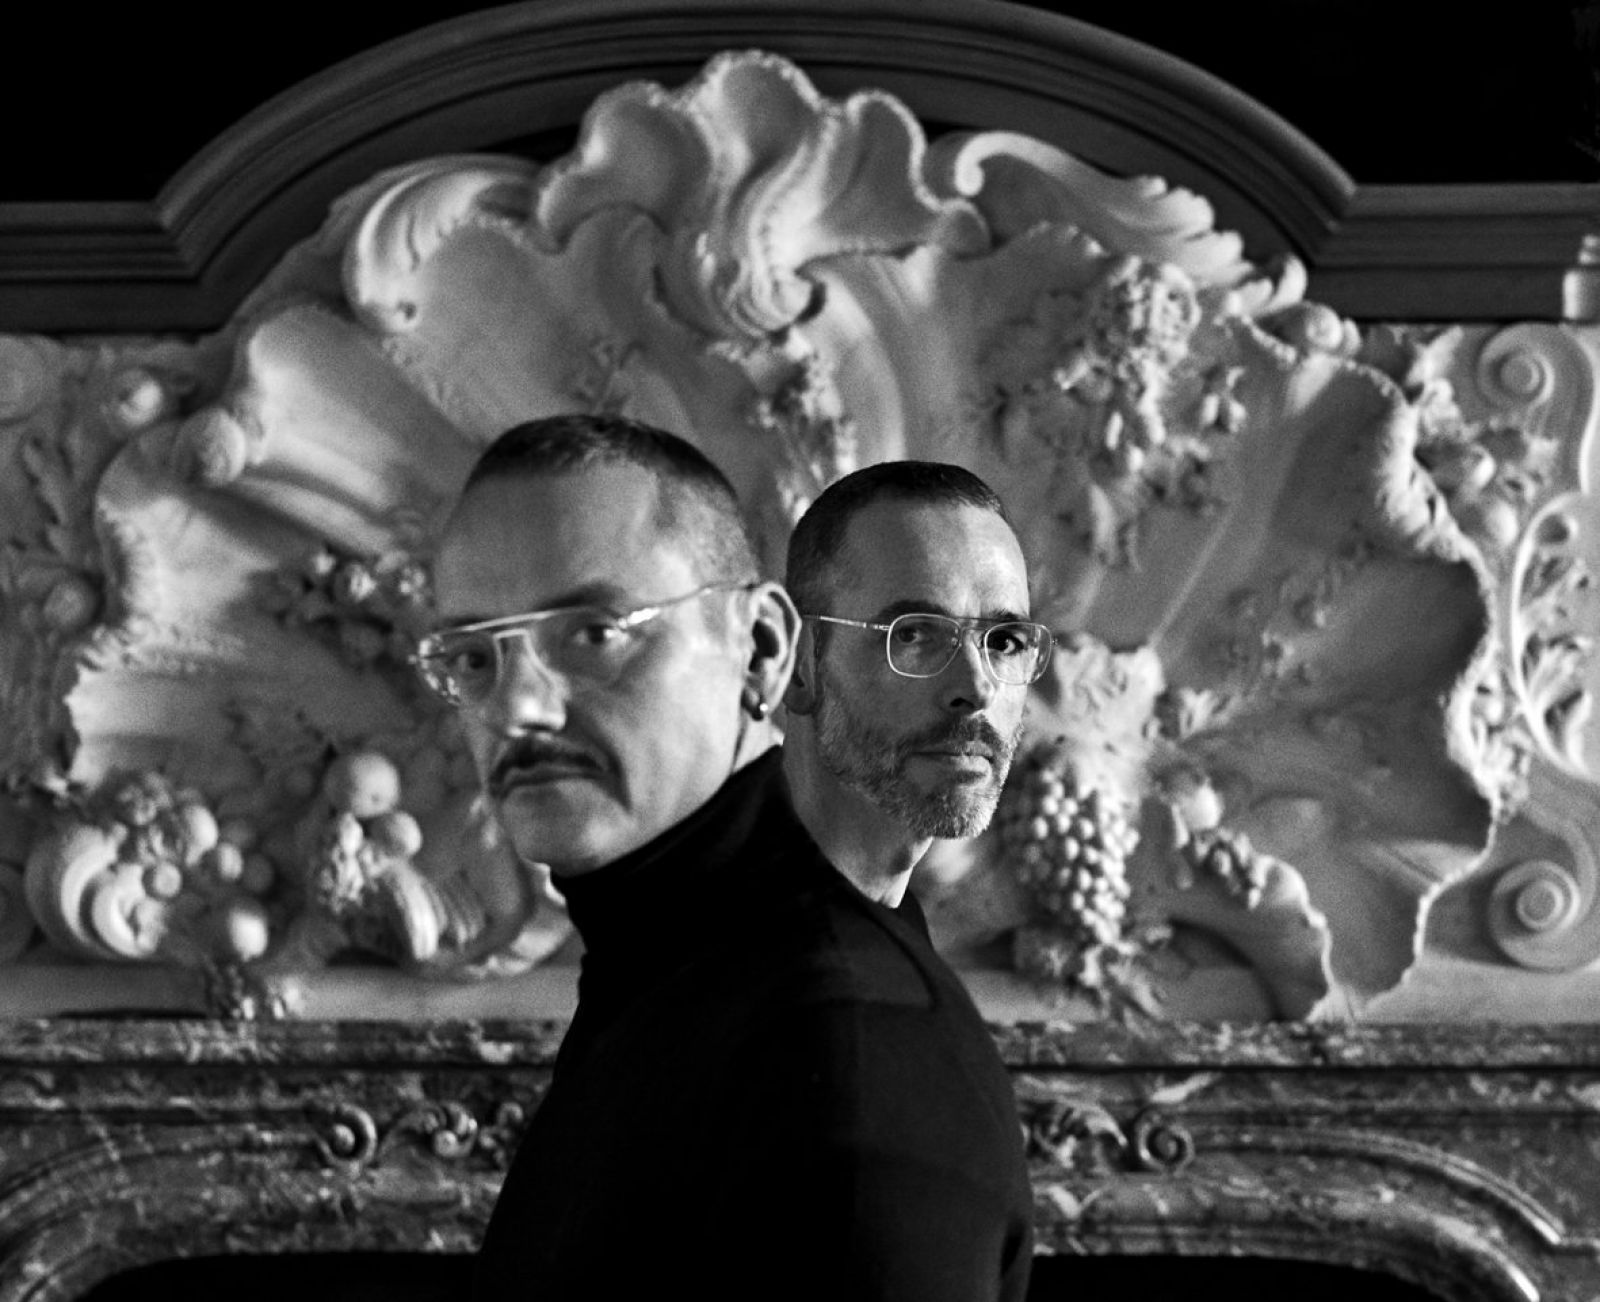 30 viktor and rolf amsterdam 2018 copyright anton corbijn 00 lowres.jpg 1181x961 q85 crop subsampling 2 upscale